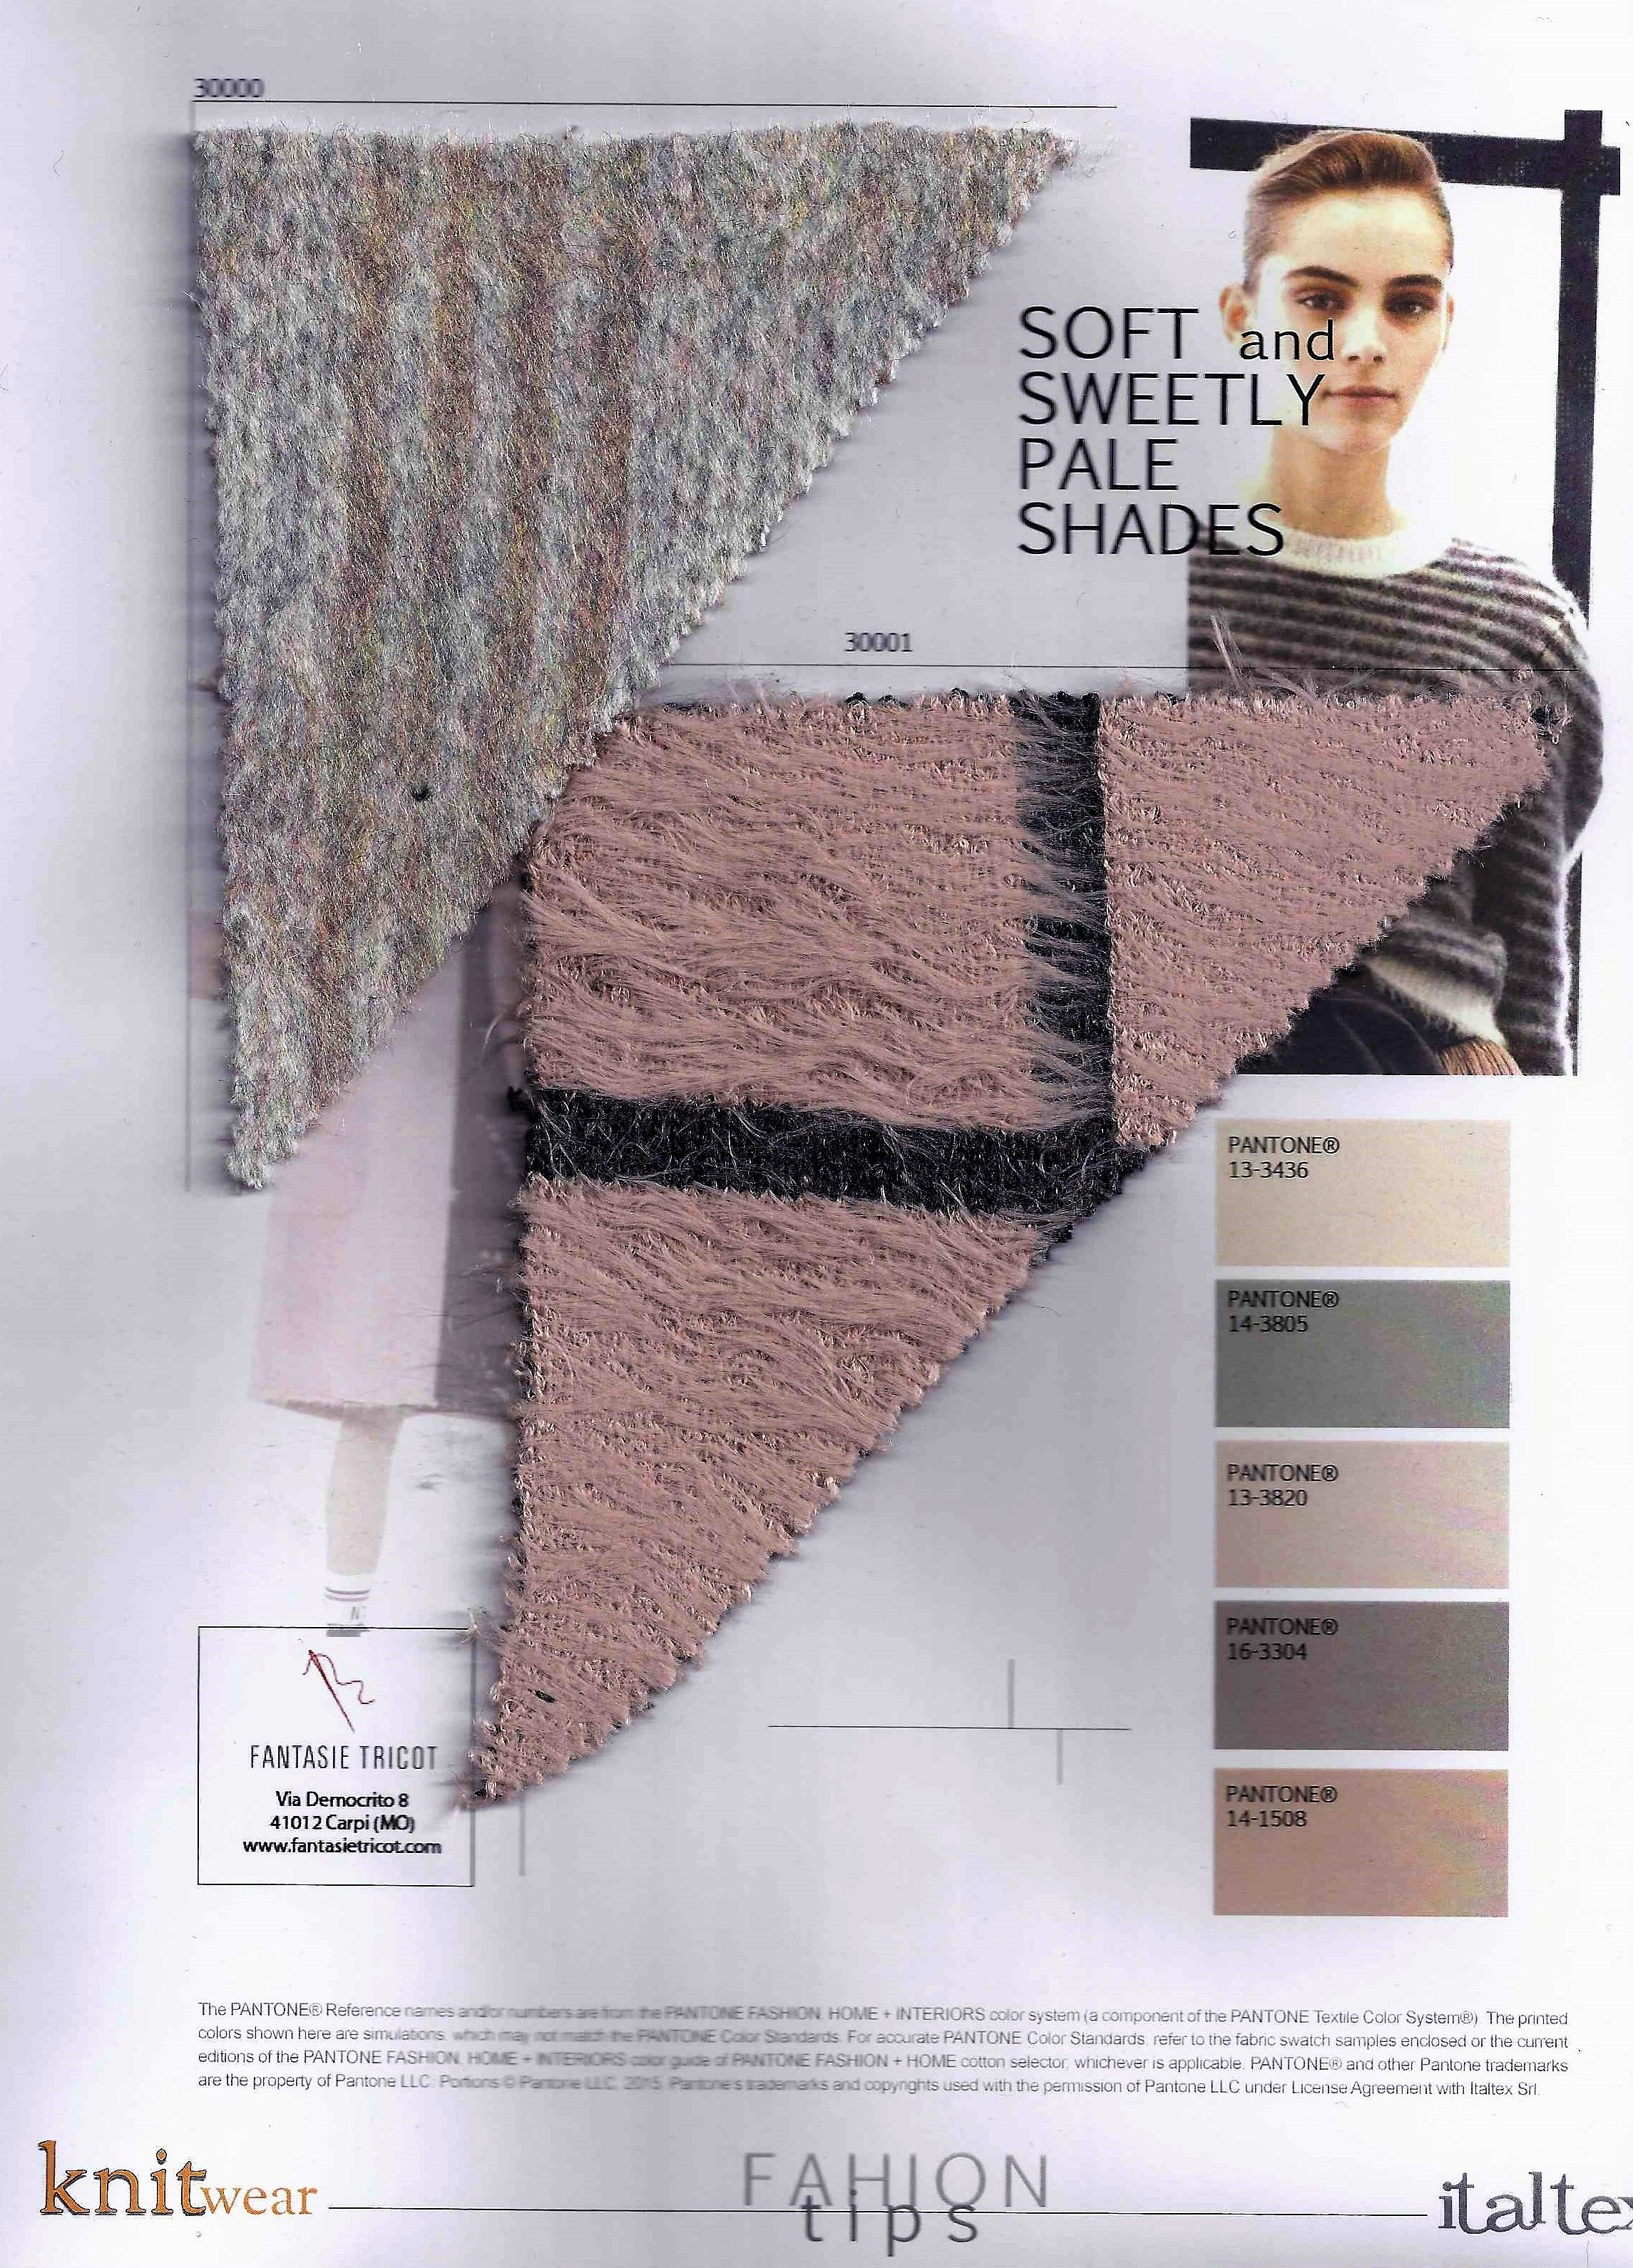 soft bulky knits in pale shades for AW 18-19 from ...